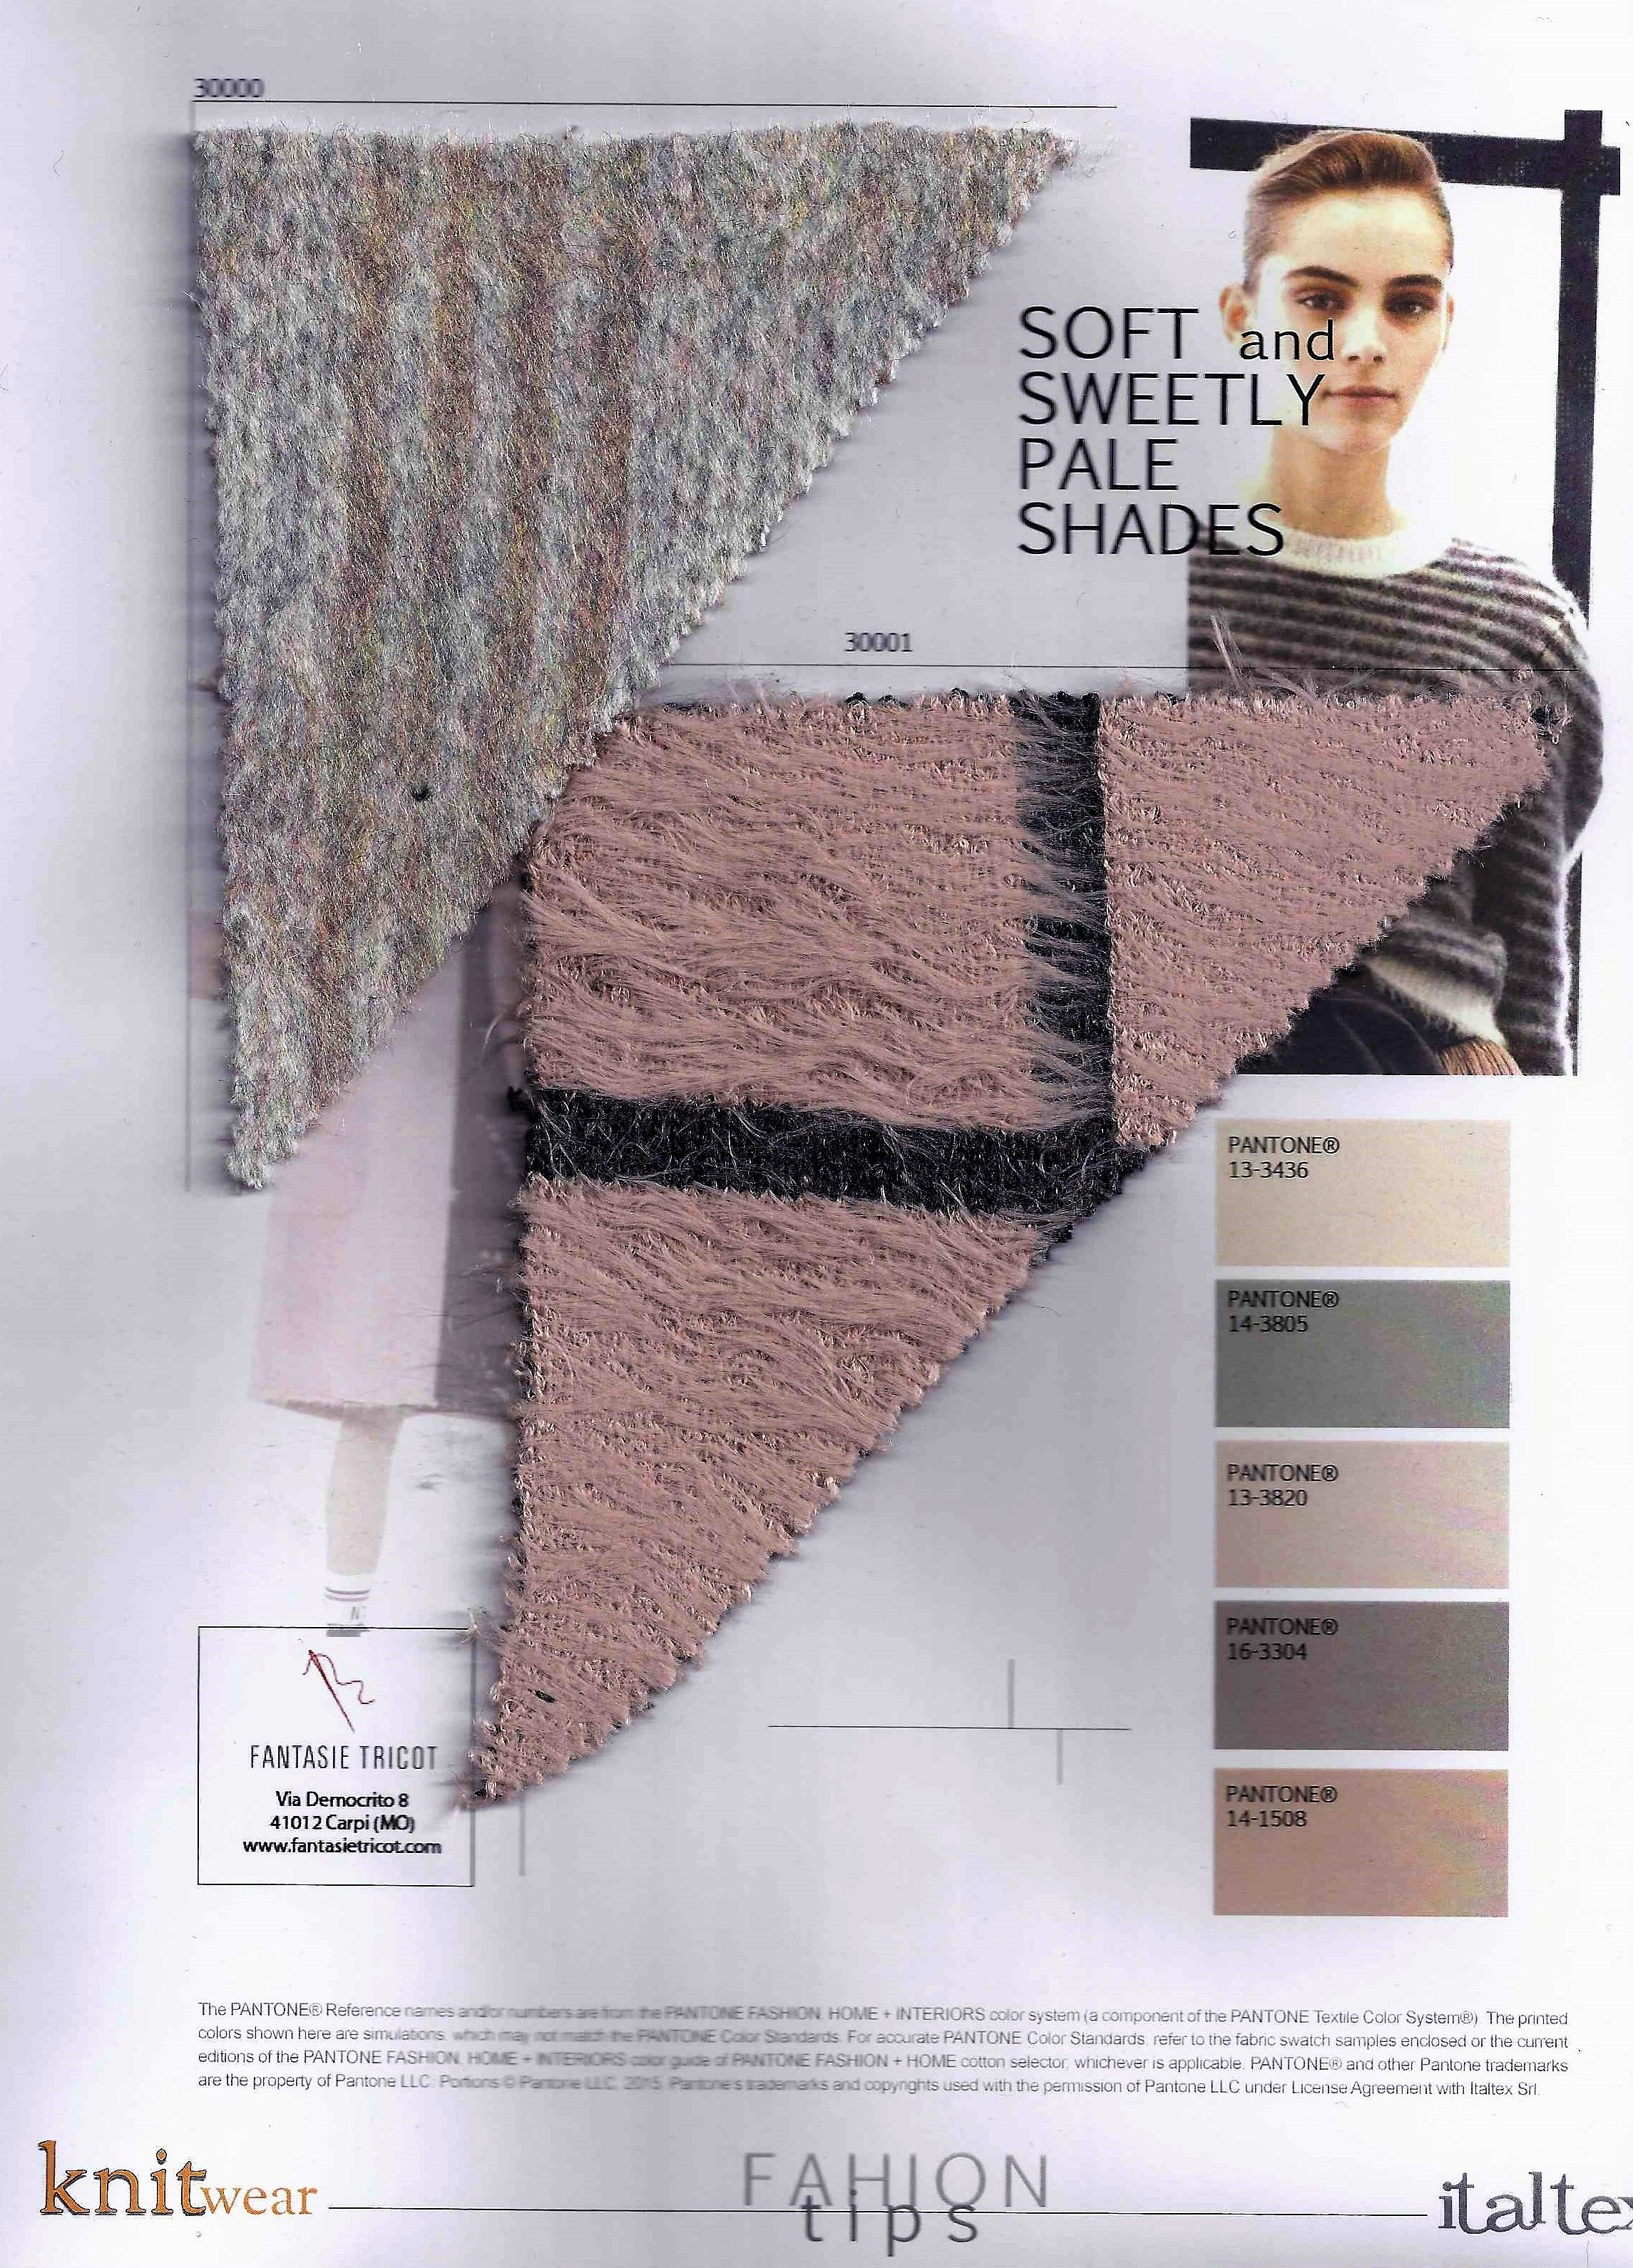 soft bulky knits in pale shades for AW 18-19 from ...